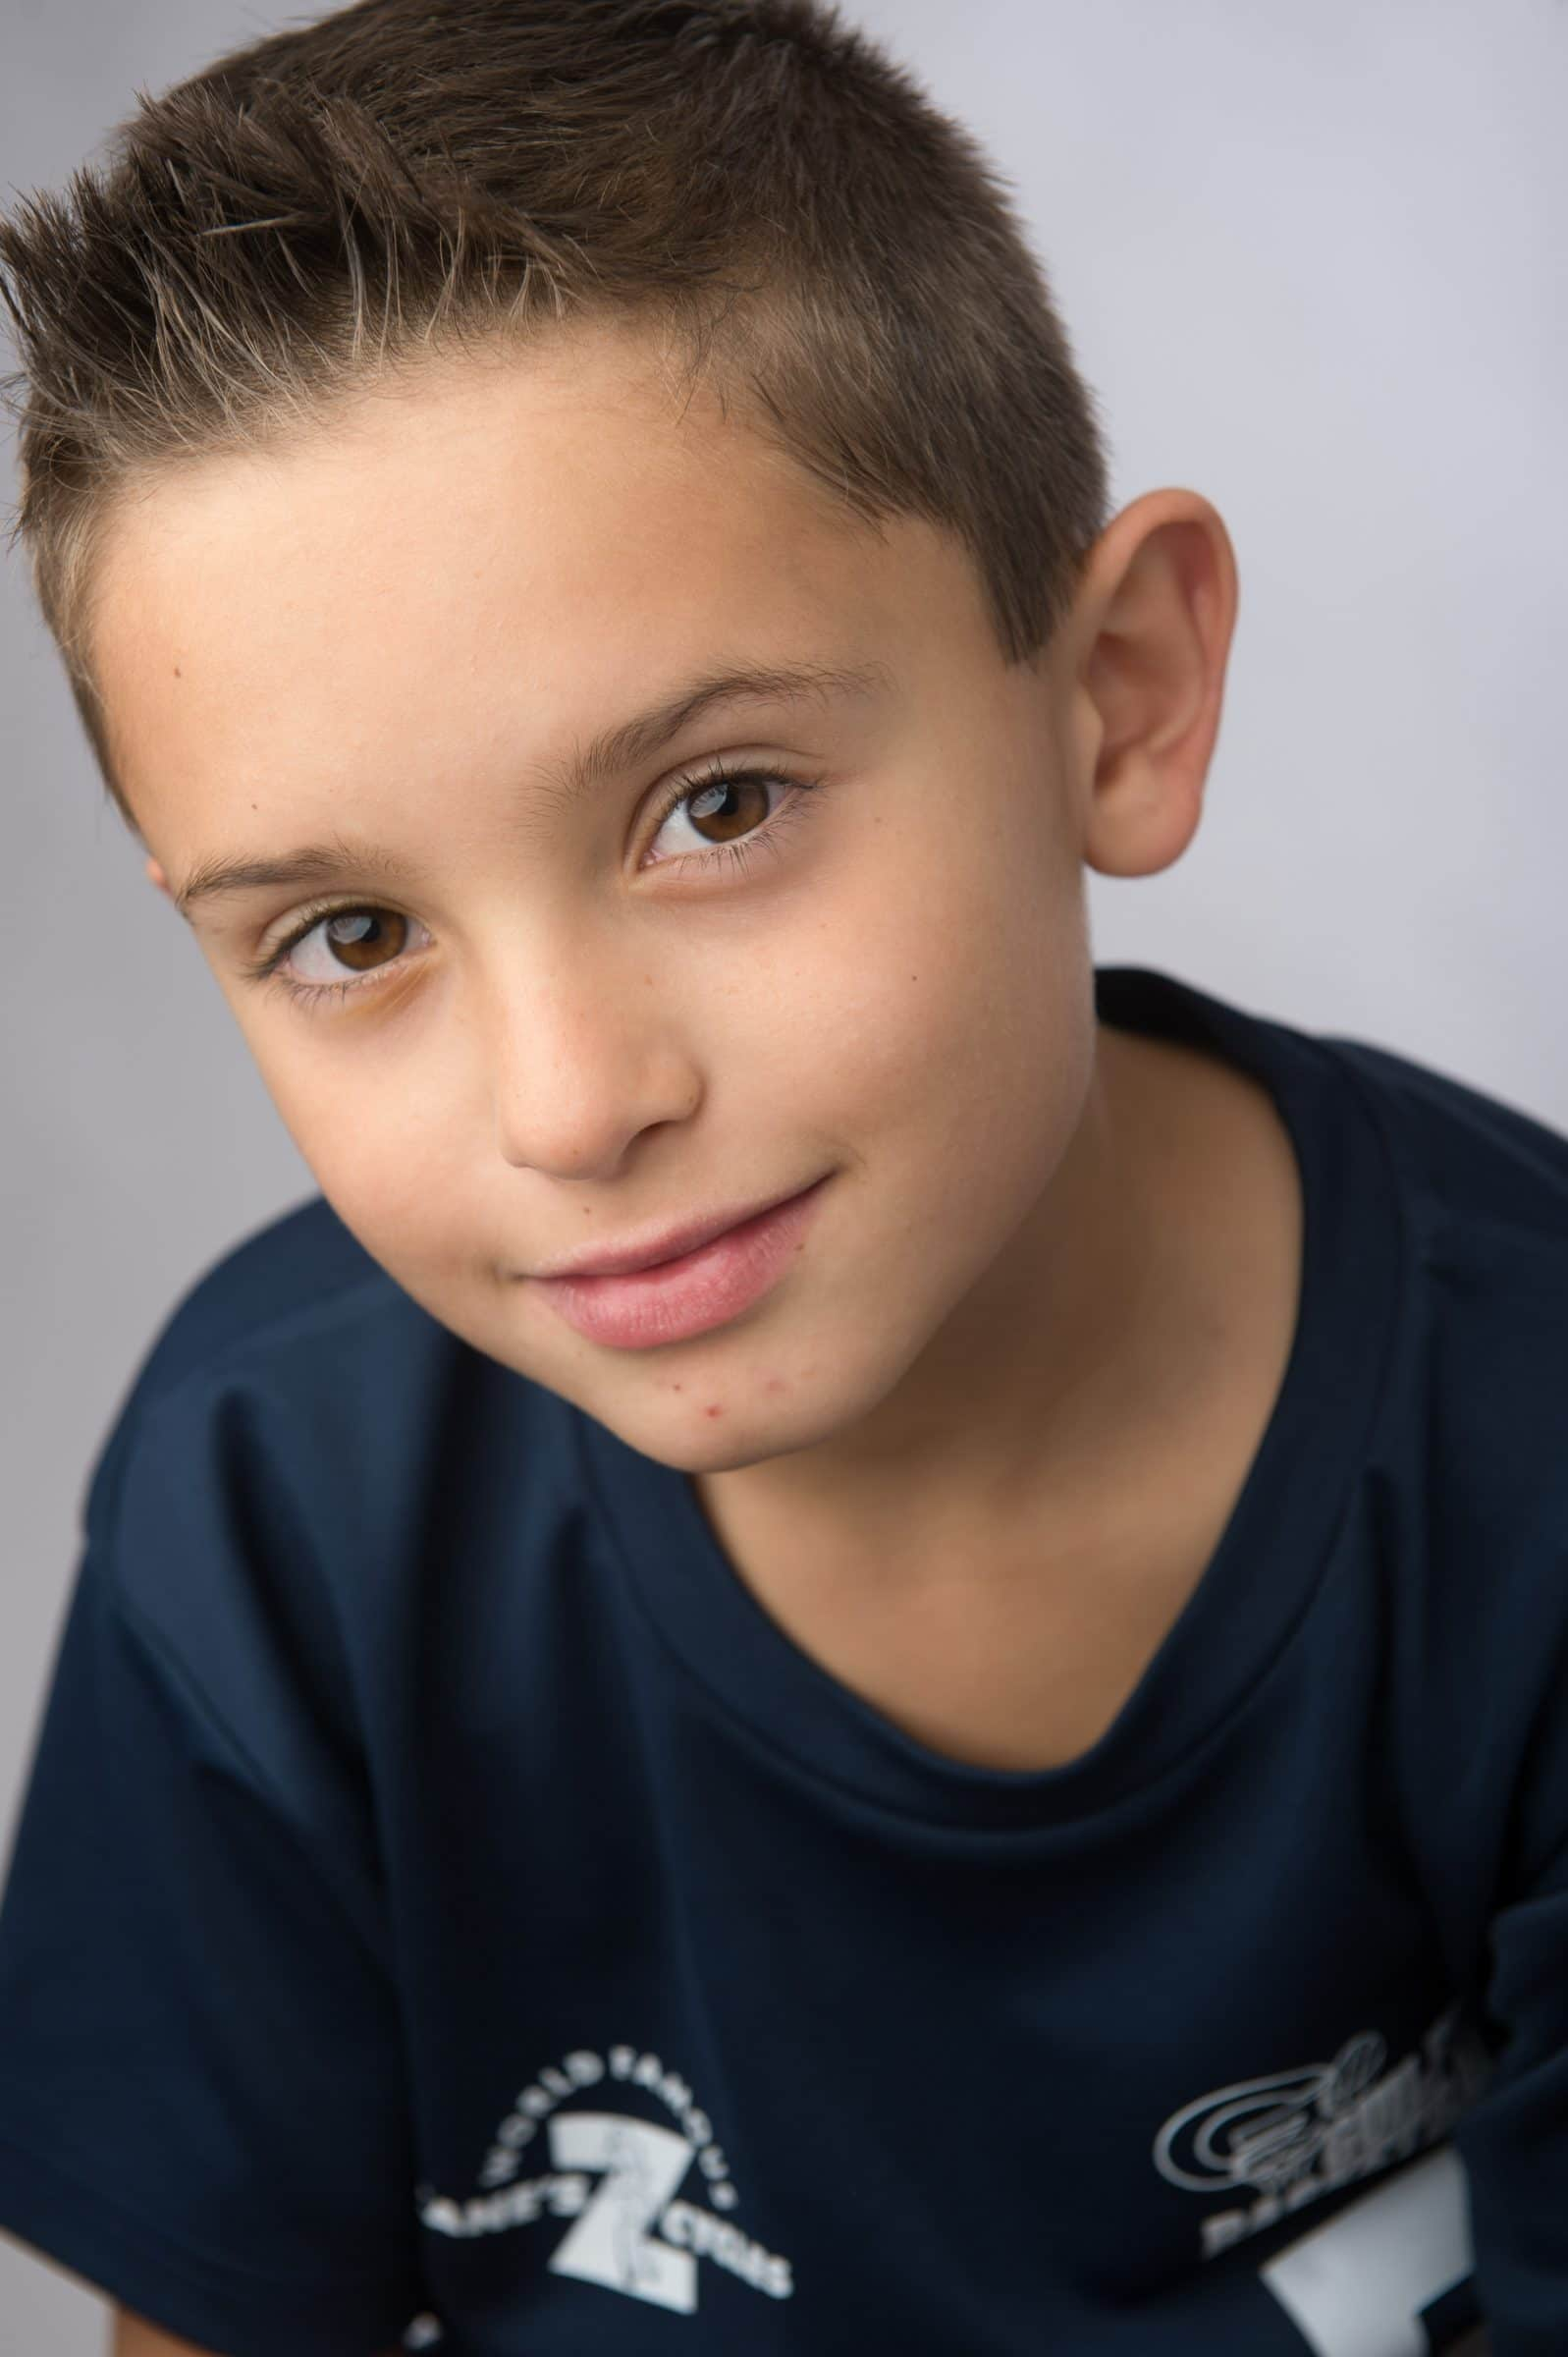 portrait of young boy